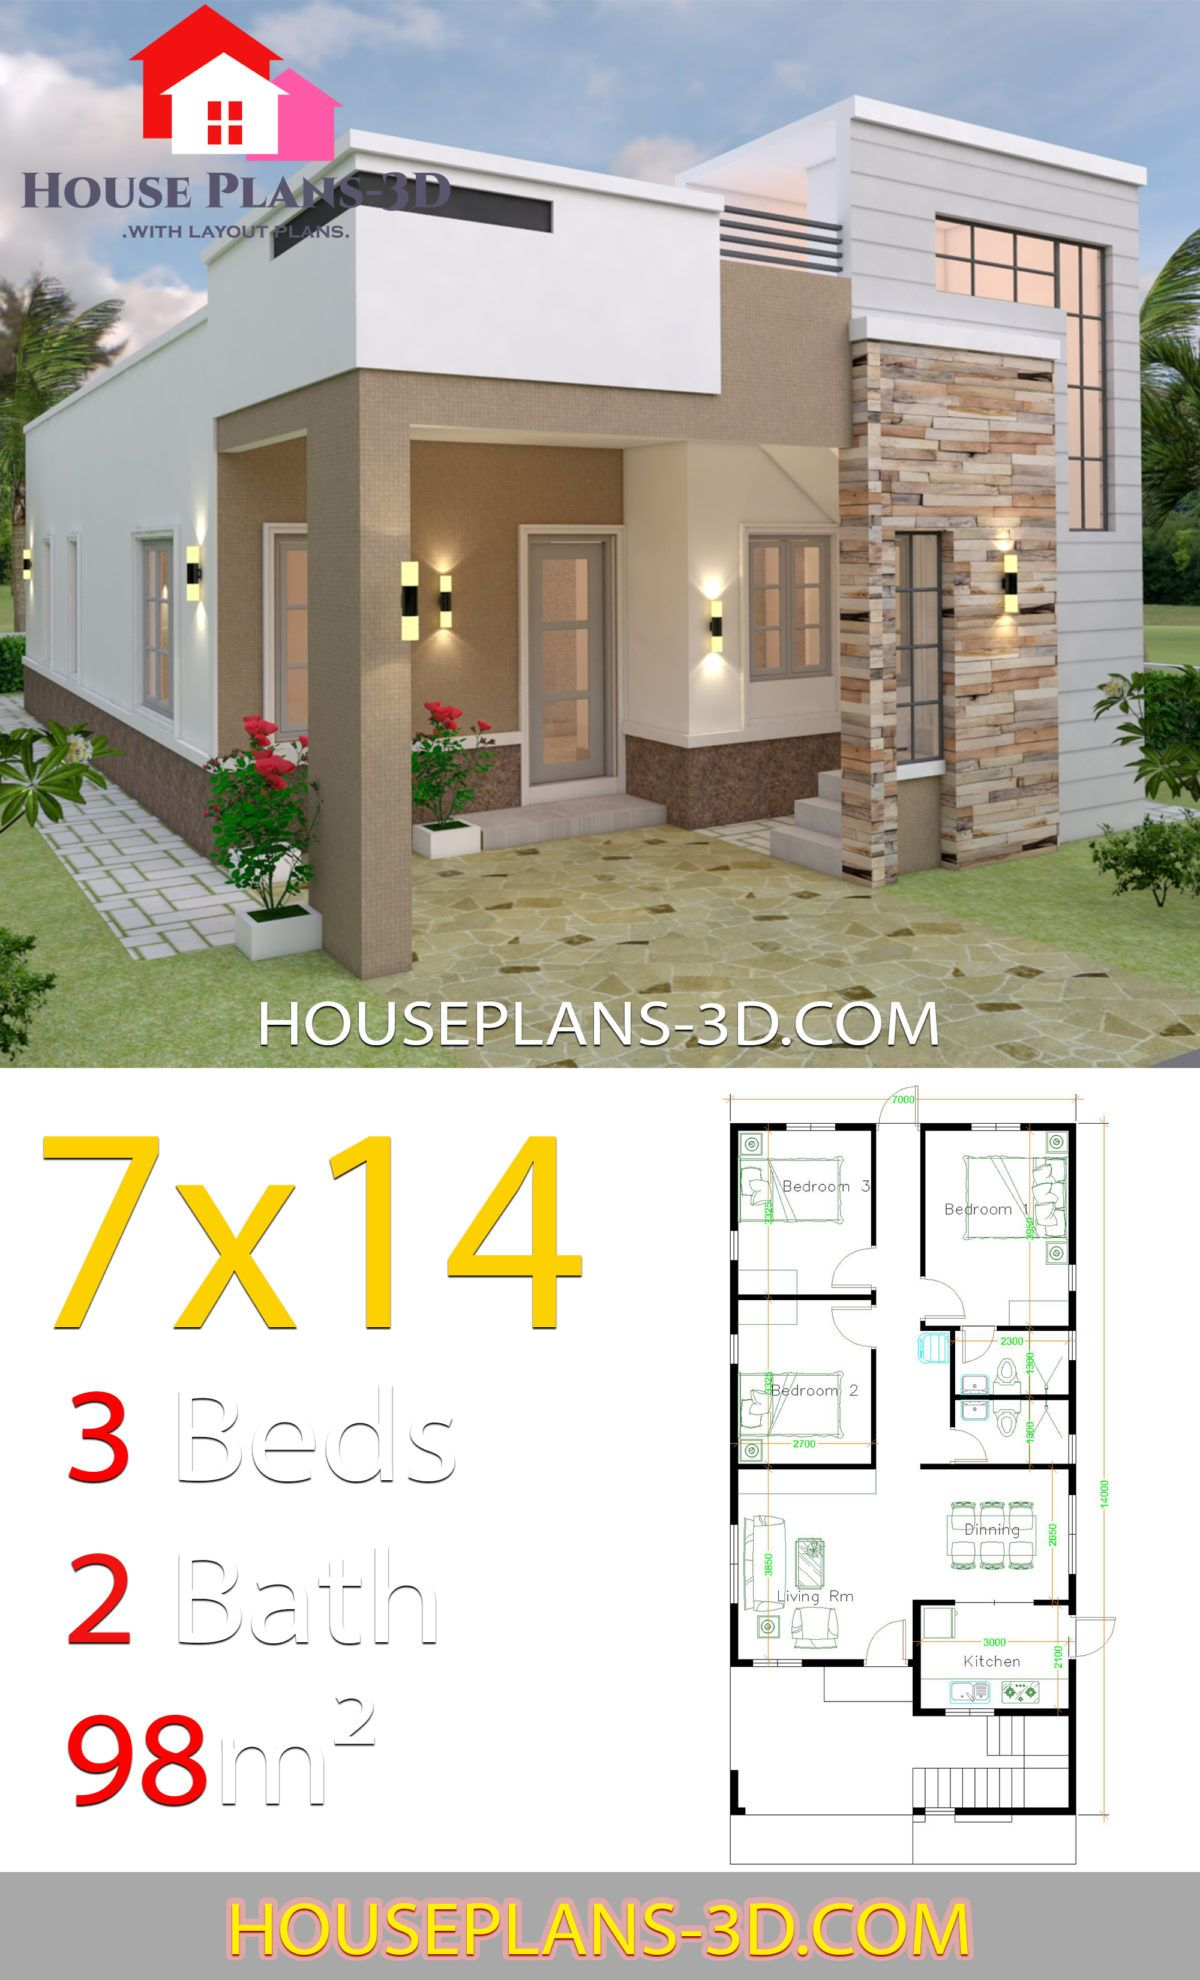 House Design 7x14 With 3 Bedrooms Terrace Roof House Plans 3d House Construction Plan Small House Design Plans Architectural House Plans